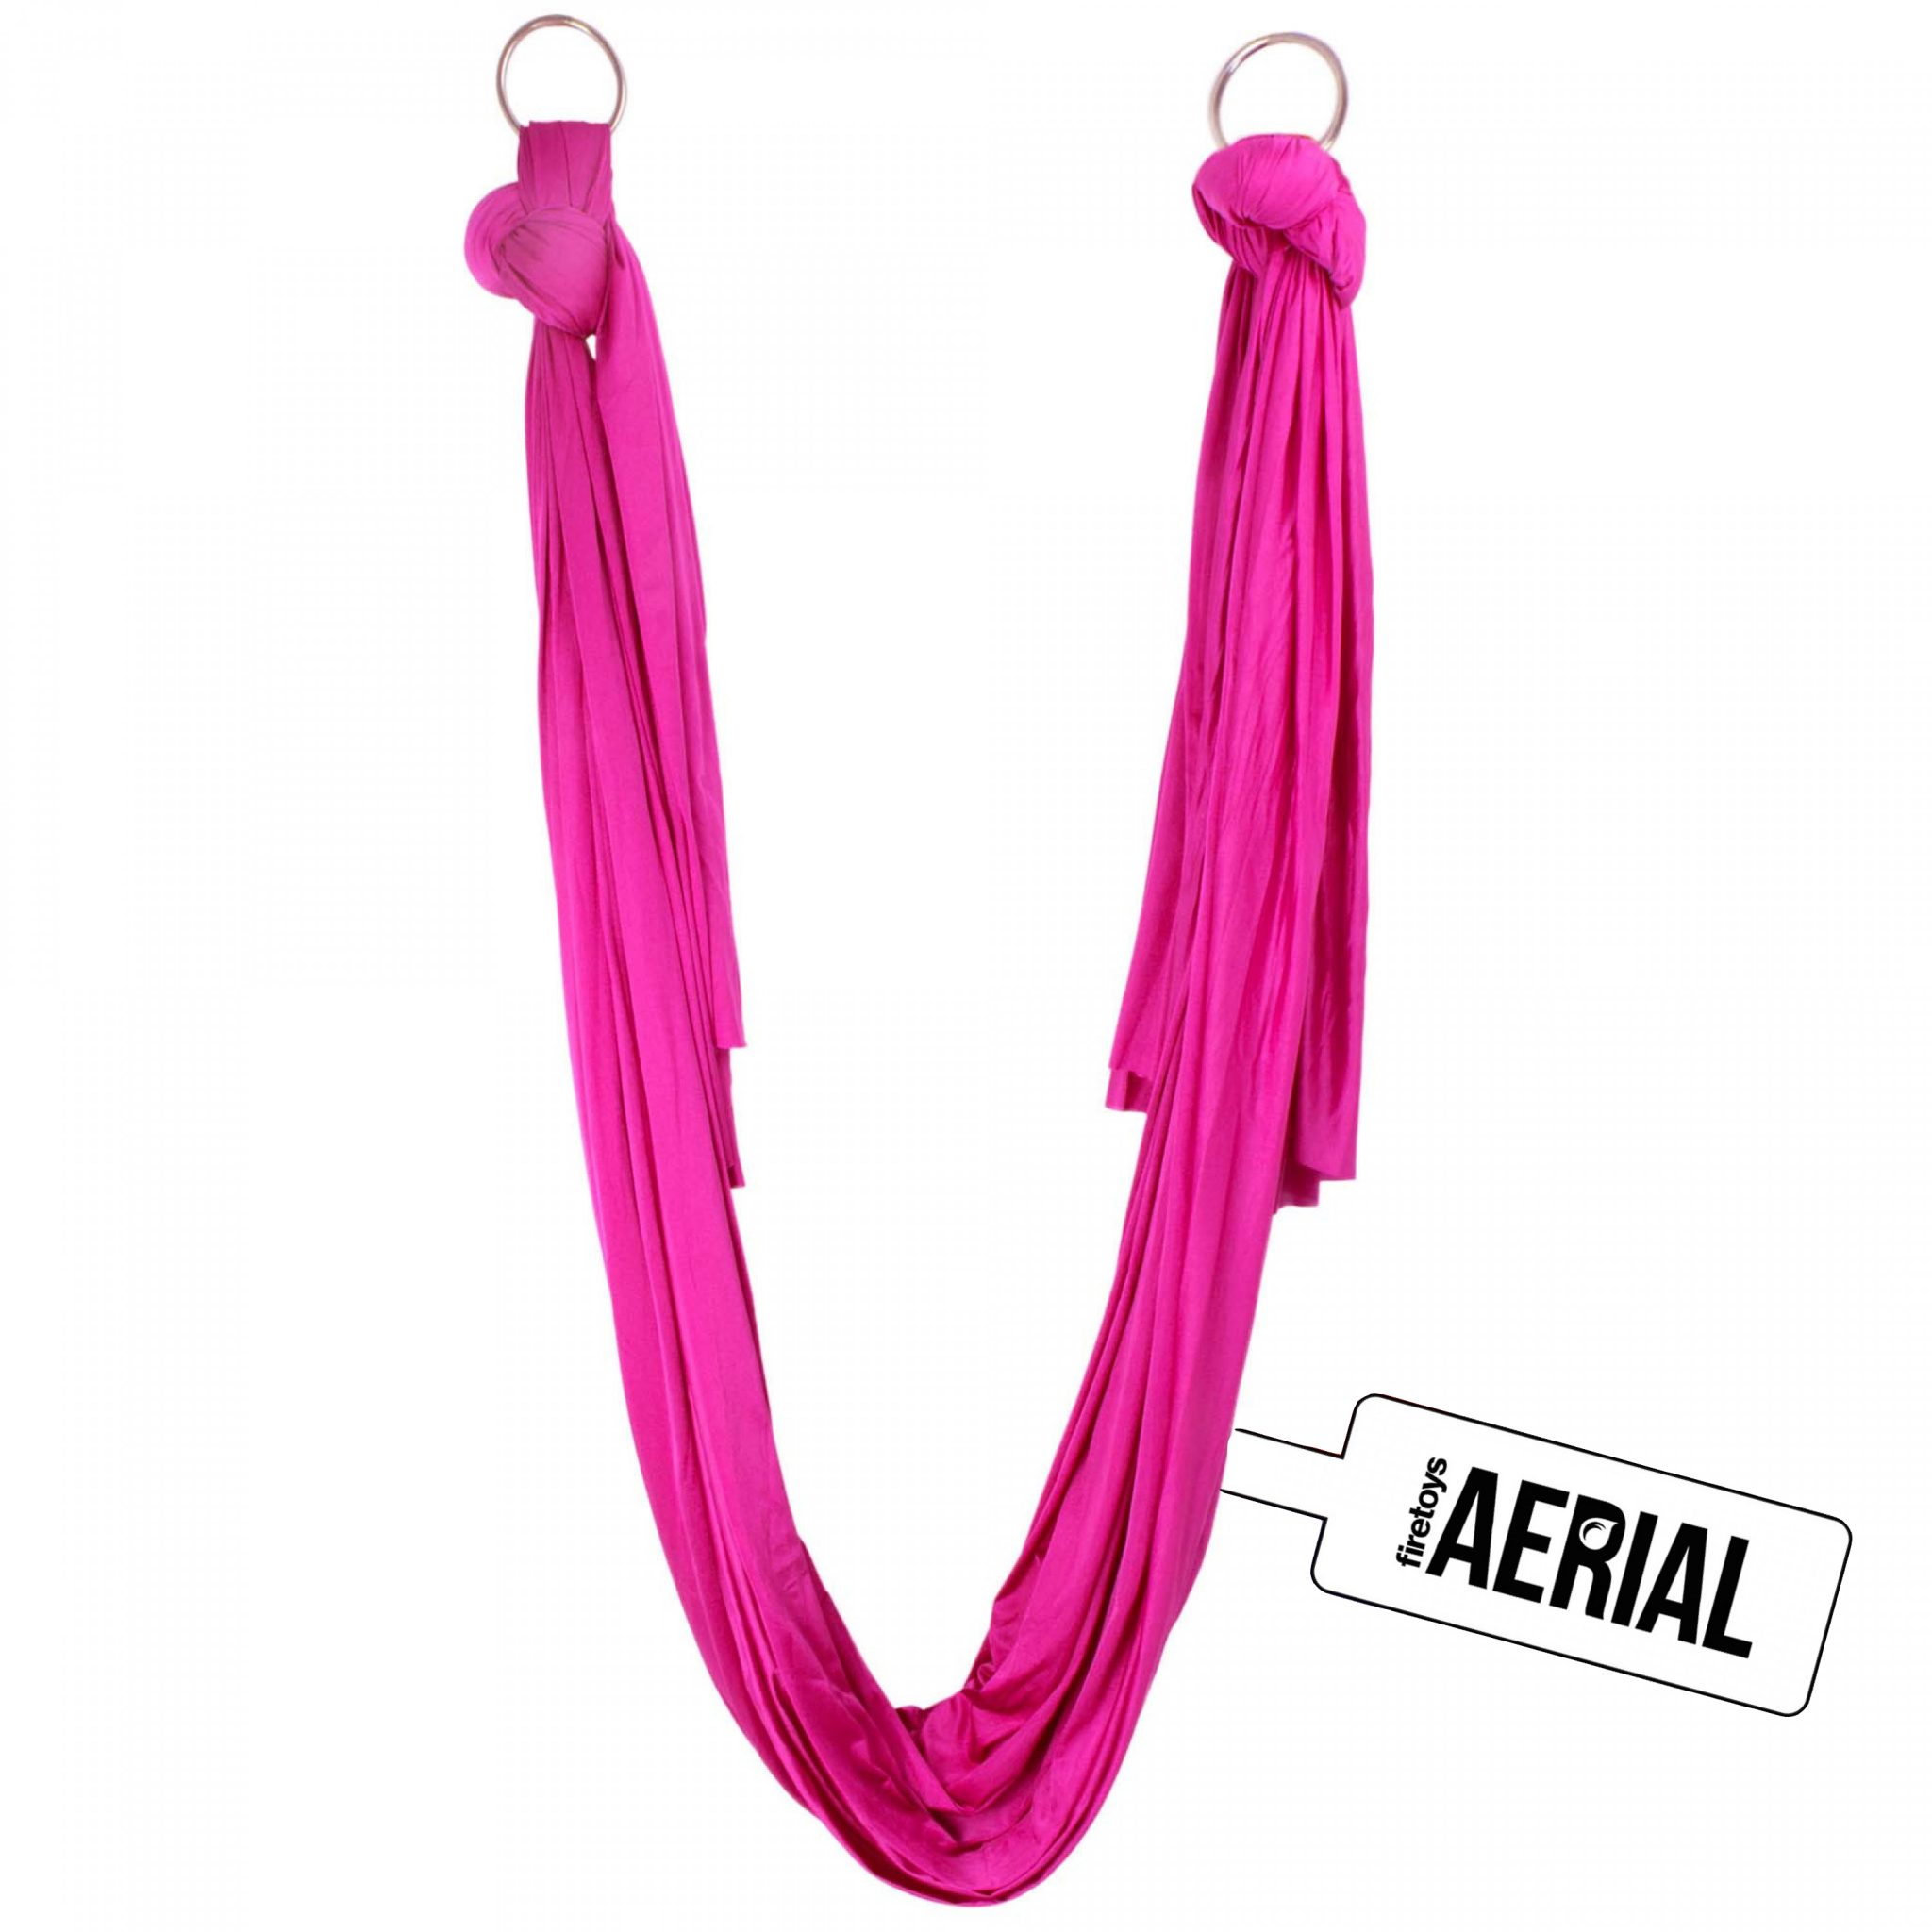 Firetoys Aerial Silk - Hot Pink-with-tag